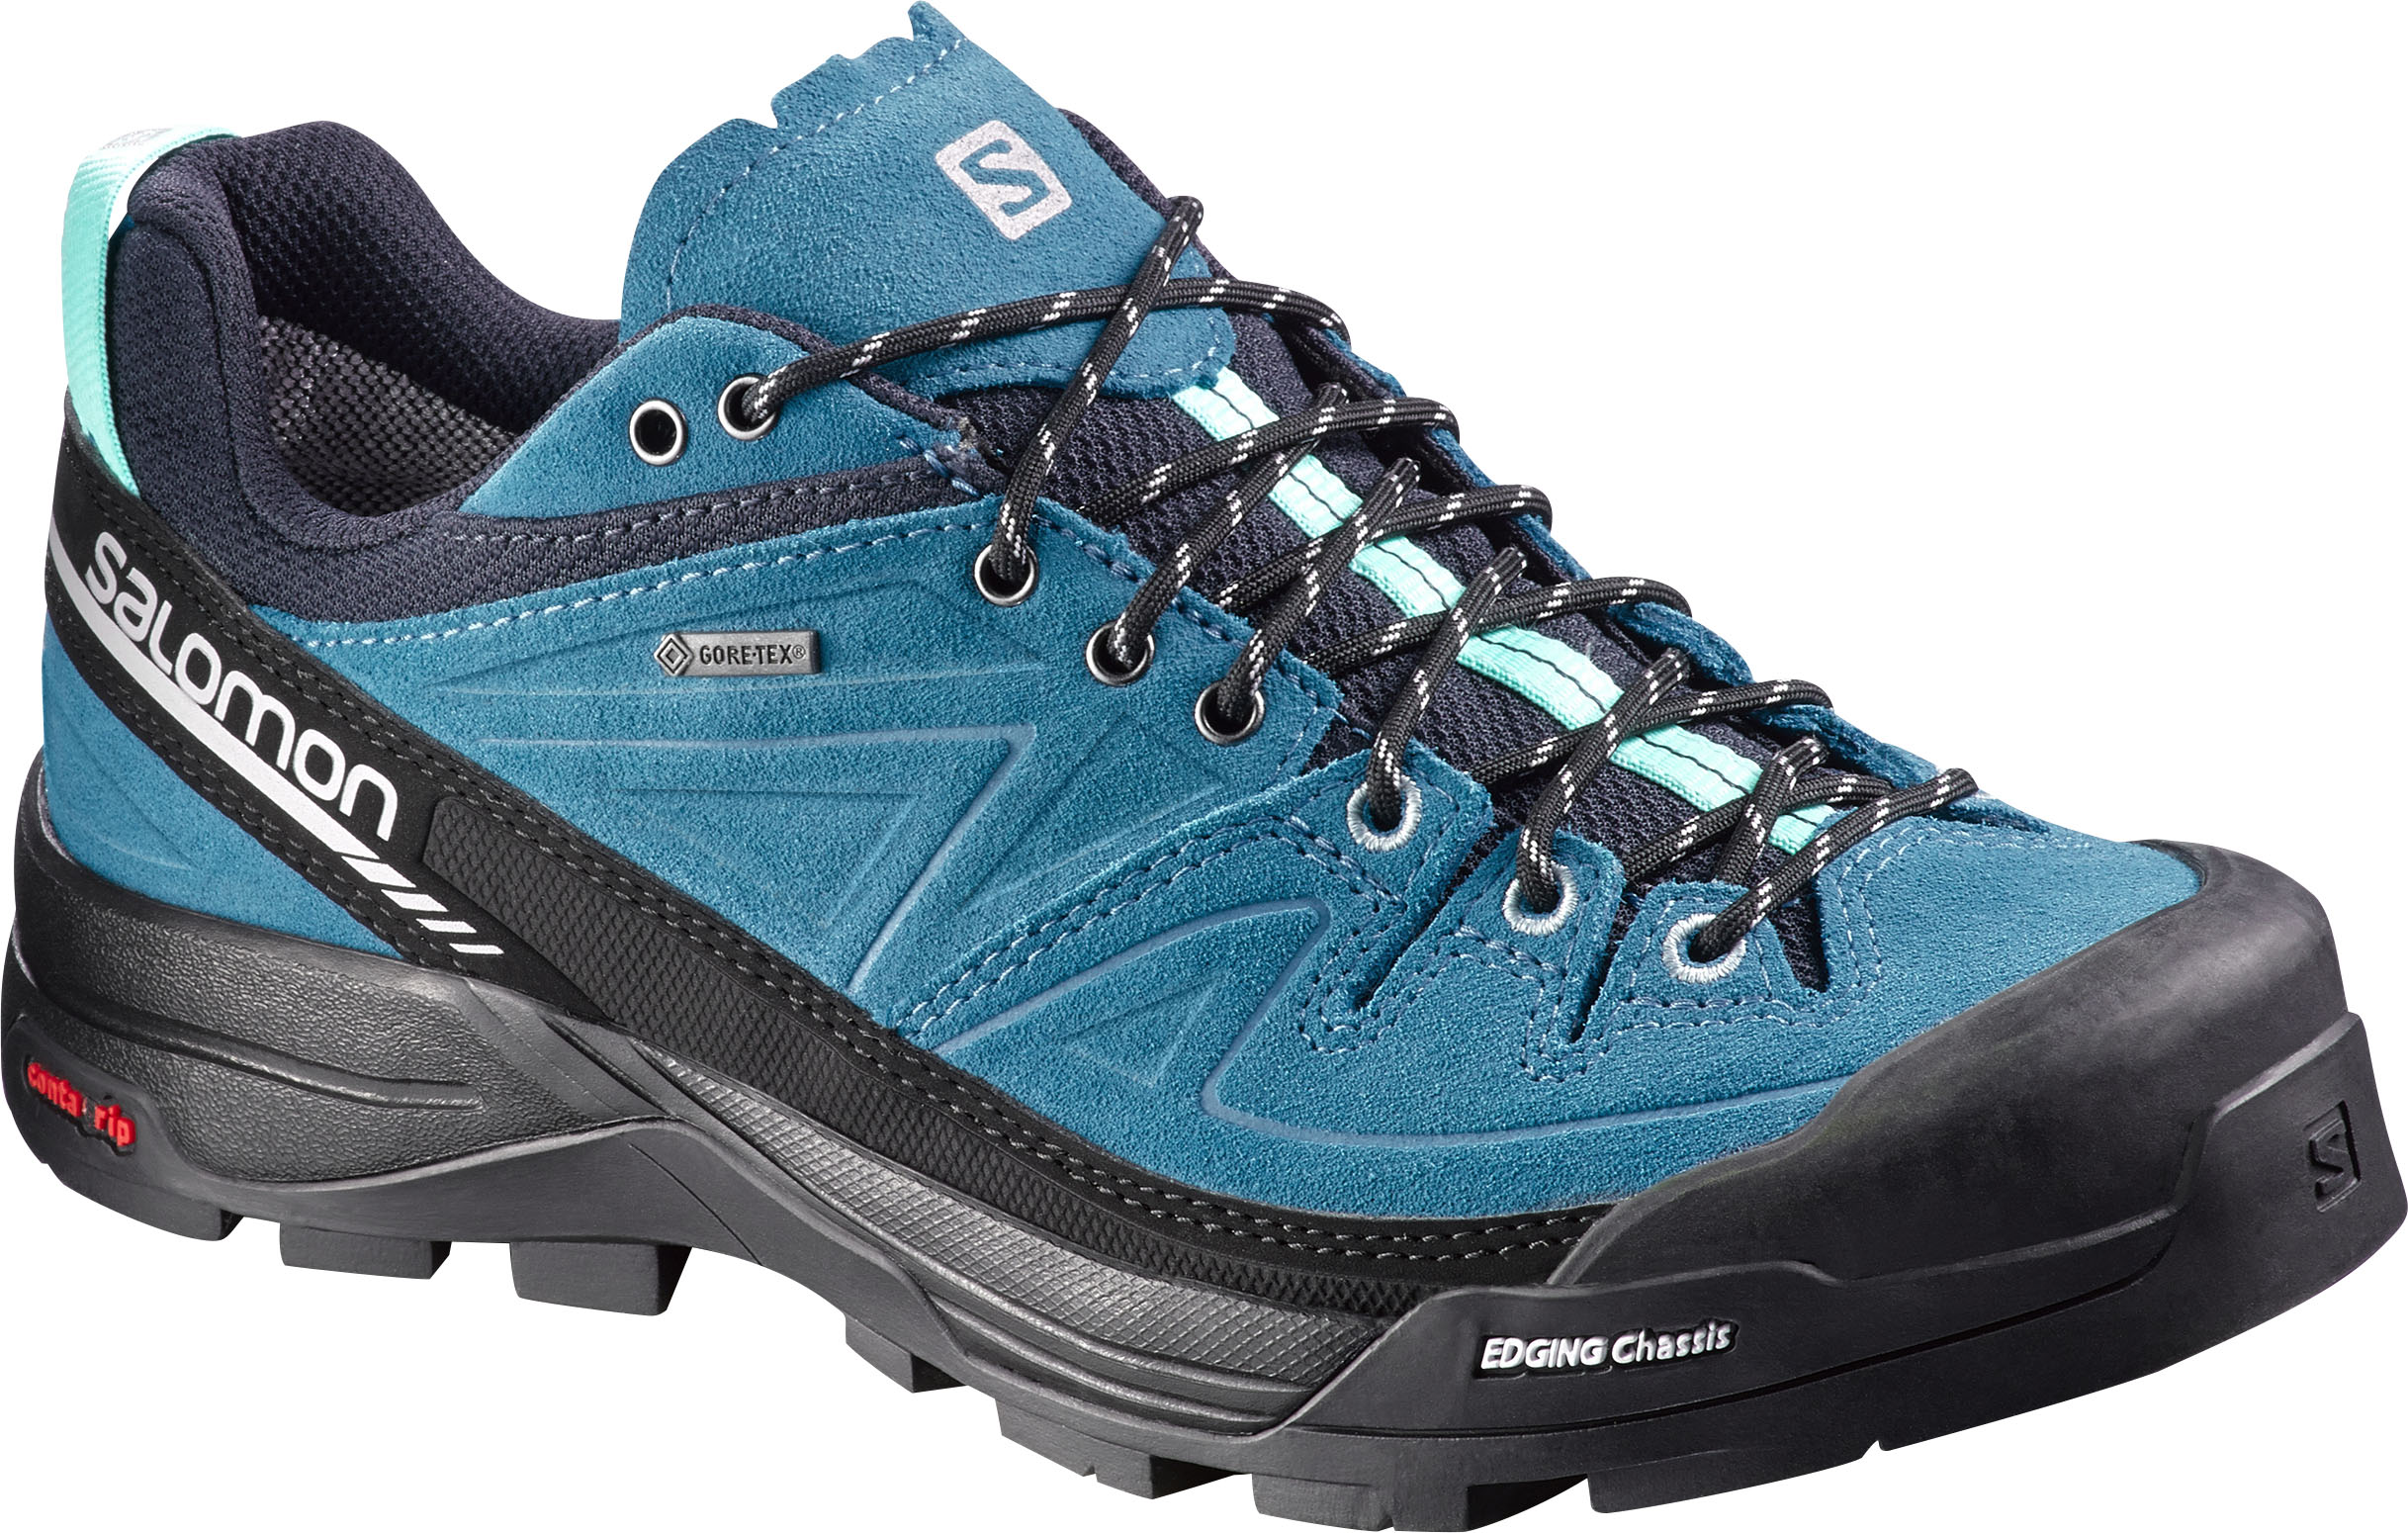 Salomon X Alp LTR GTX Approach Shoe Womens